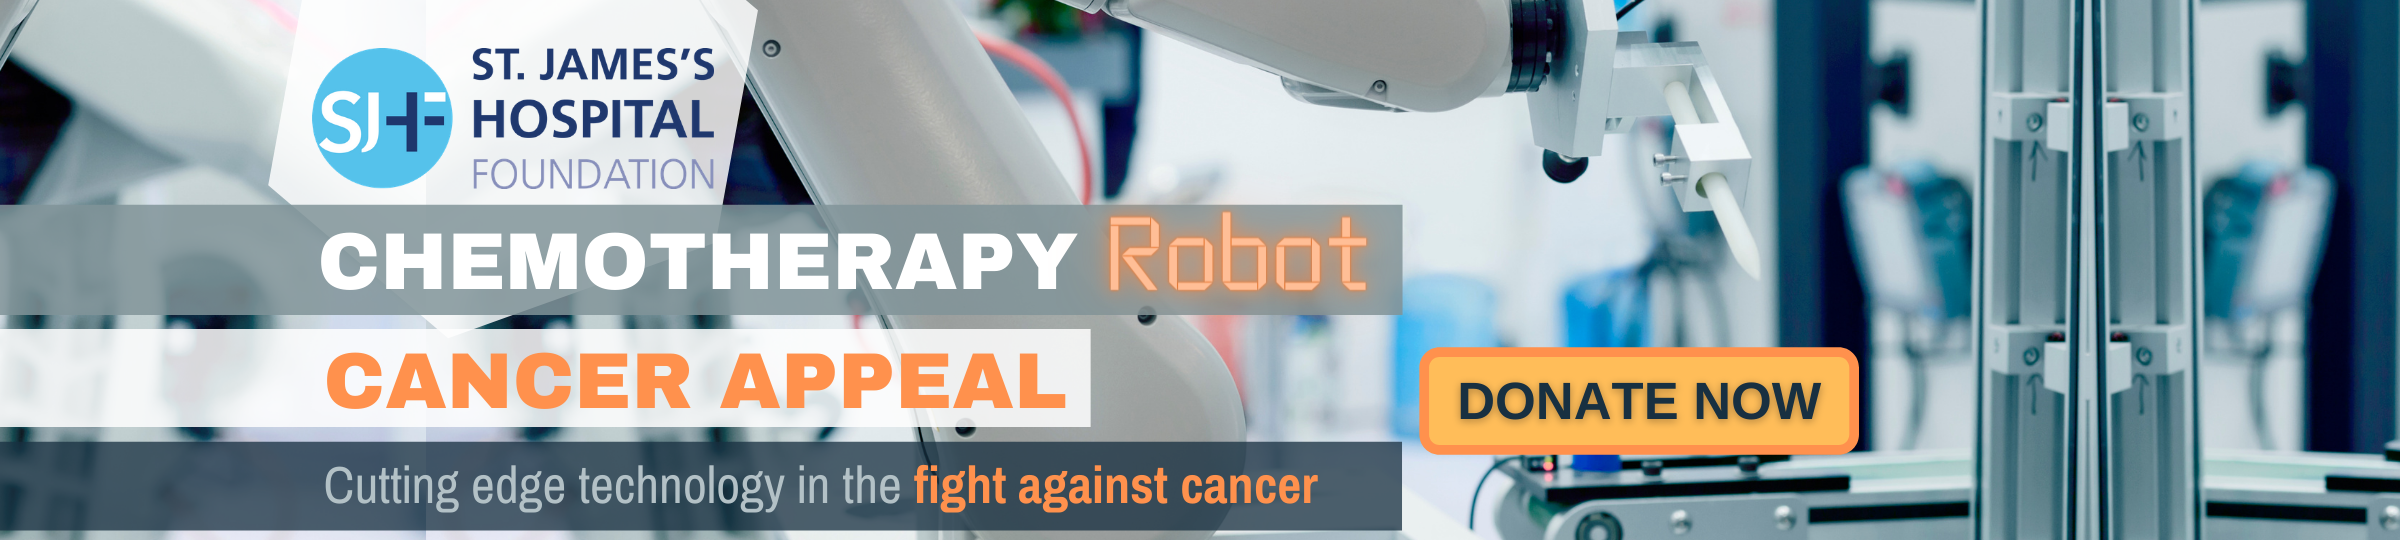 slider-CHEMOTHERAPY-ROBOT-APPEAL-